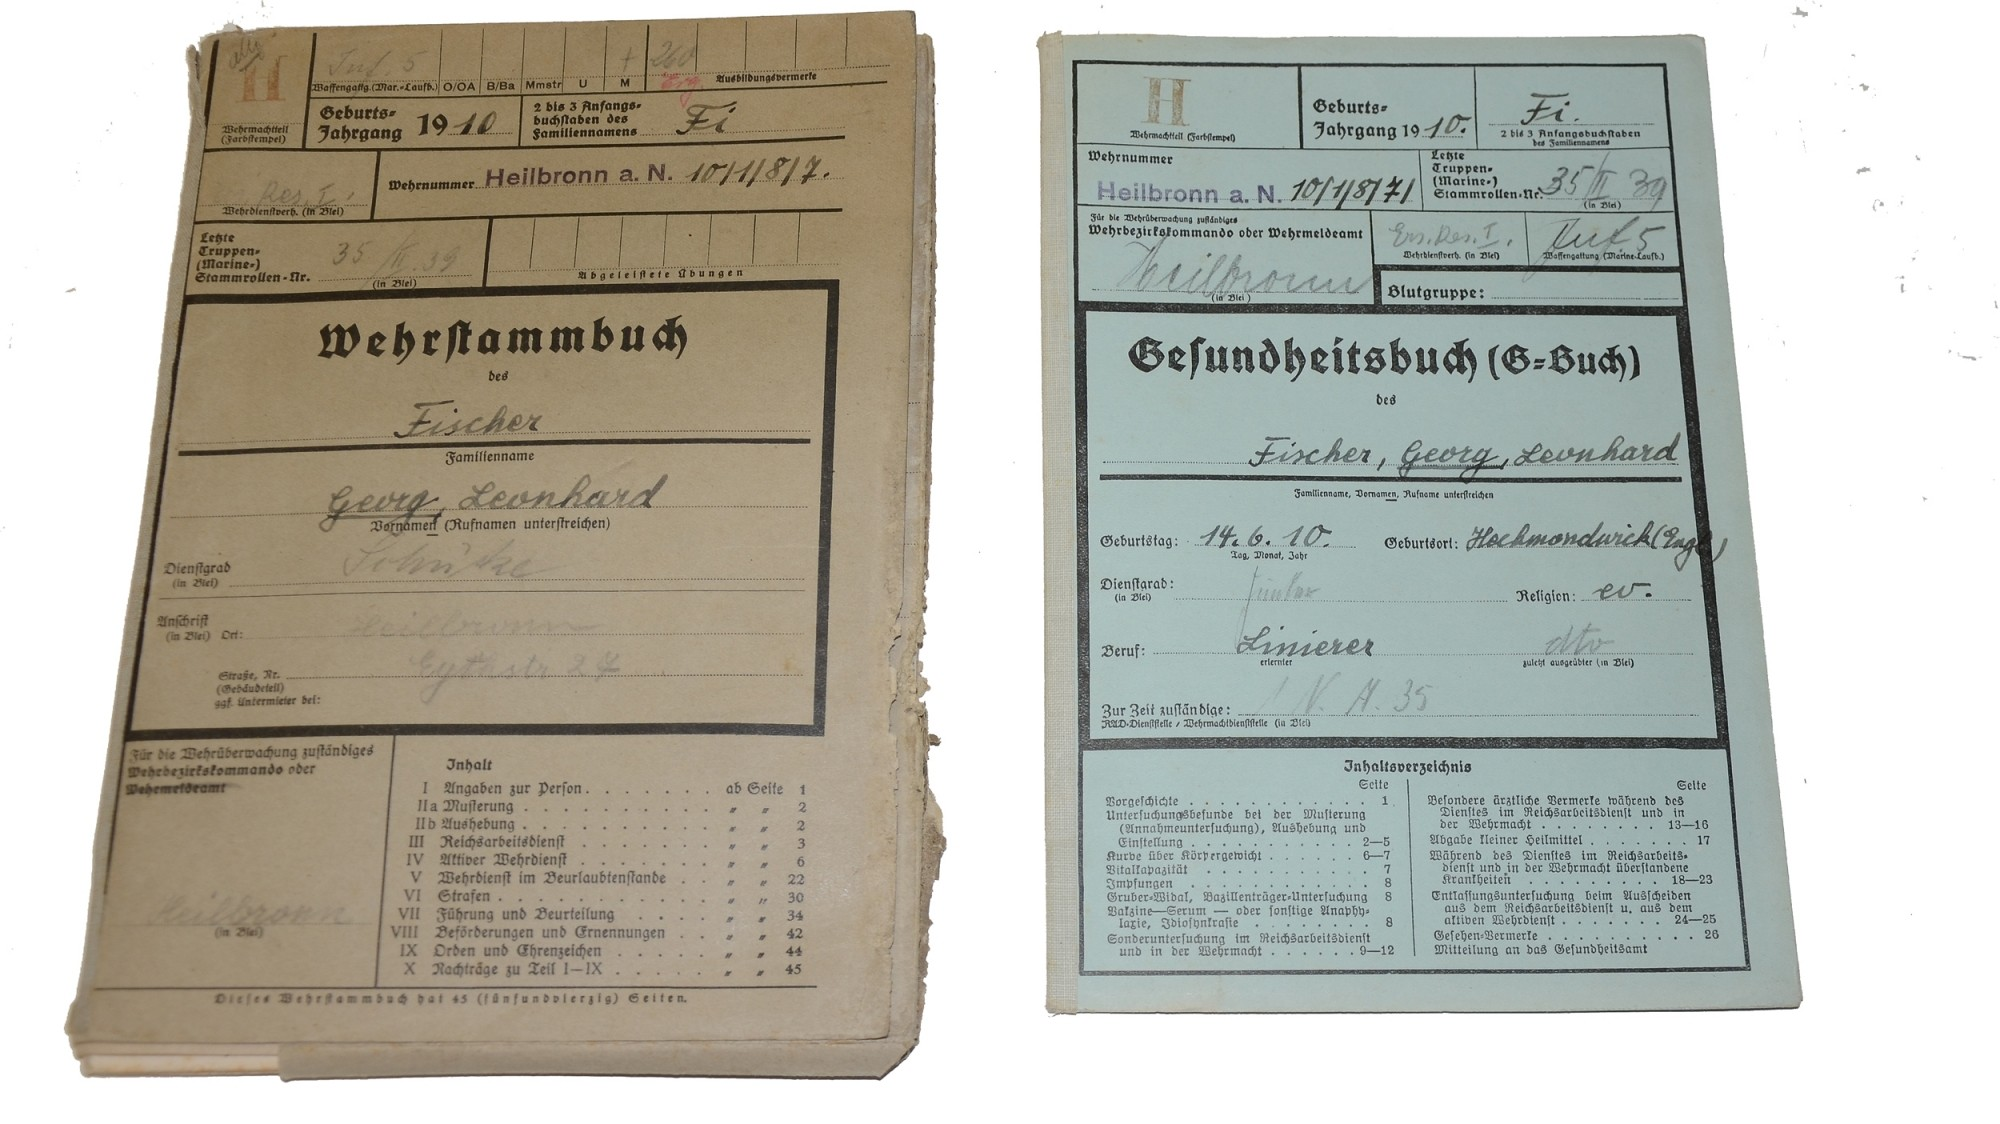 MILITARY AND HEALTH RECORDS FOR WORLD WAR TWO GERMAN SOLDIER WHO FOUGHT AT DUNKIRK